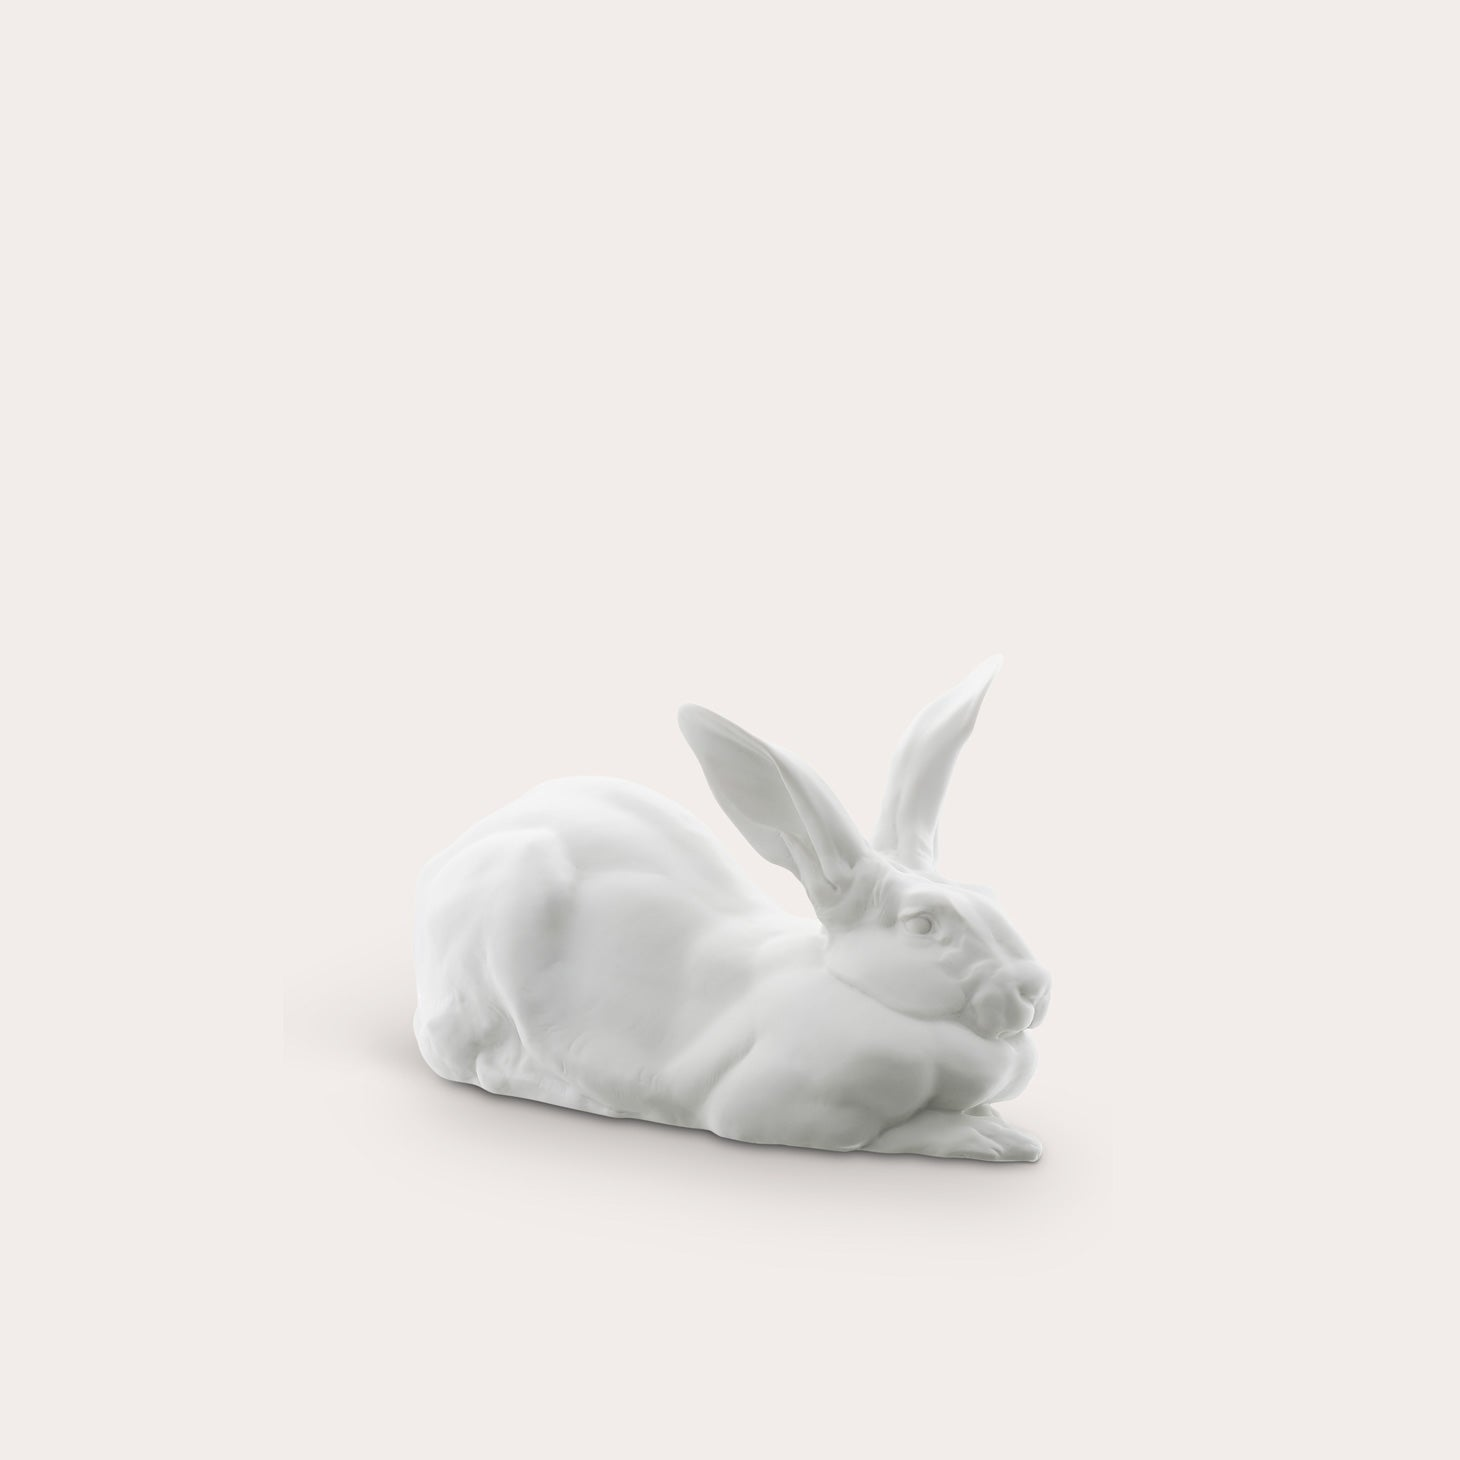 Hare Accessories Theodor Karner Designer Furniture Sku: 542-100-10176